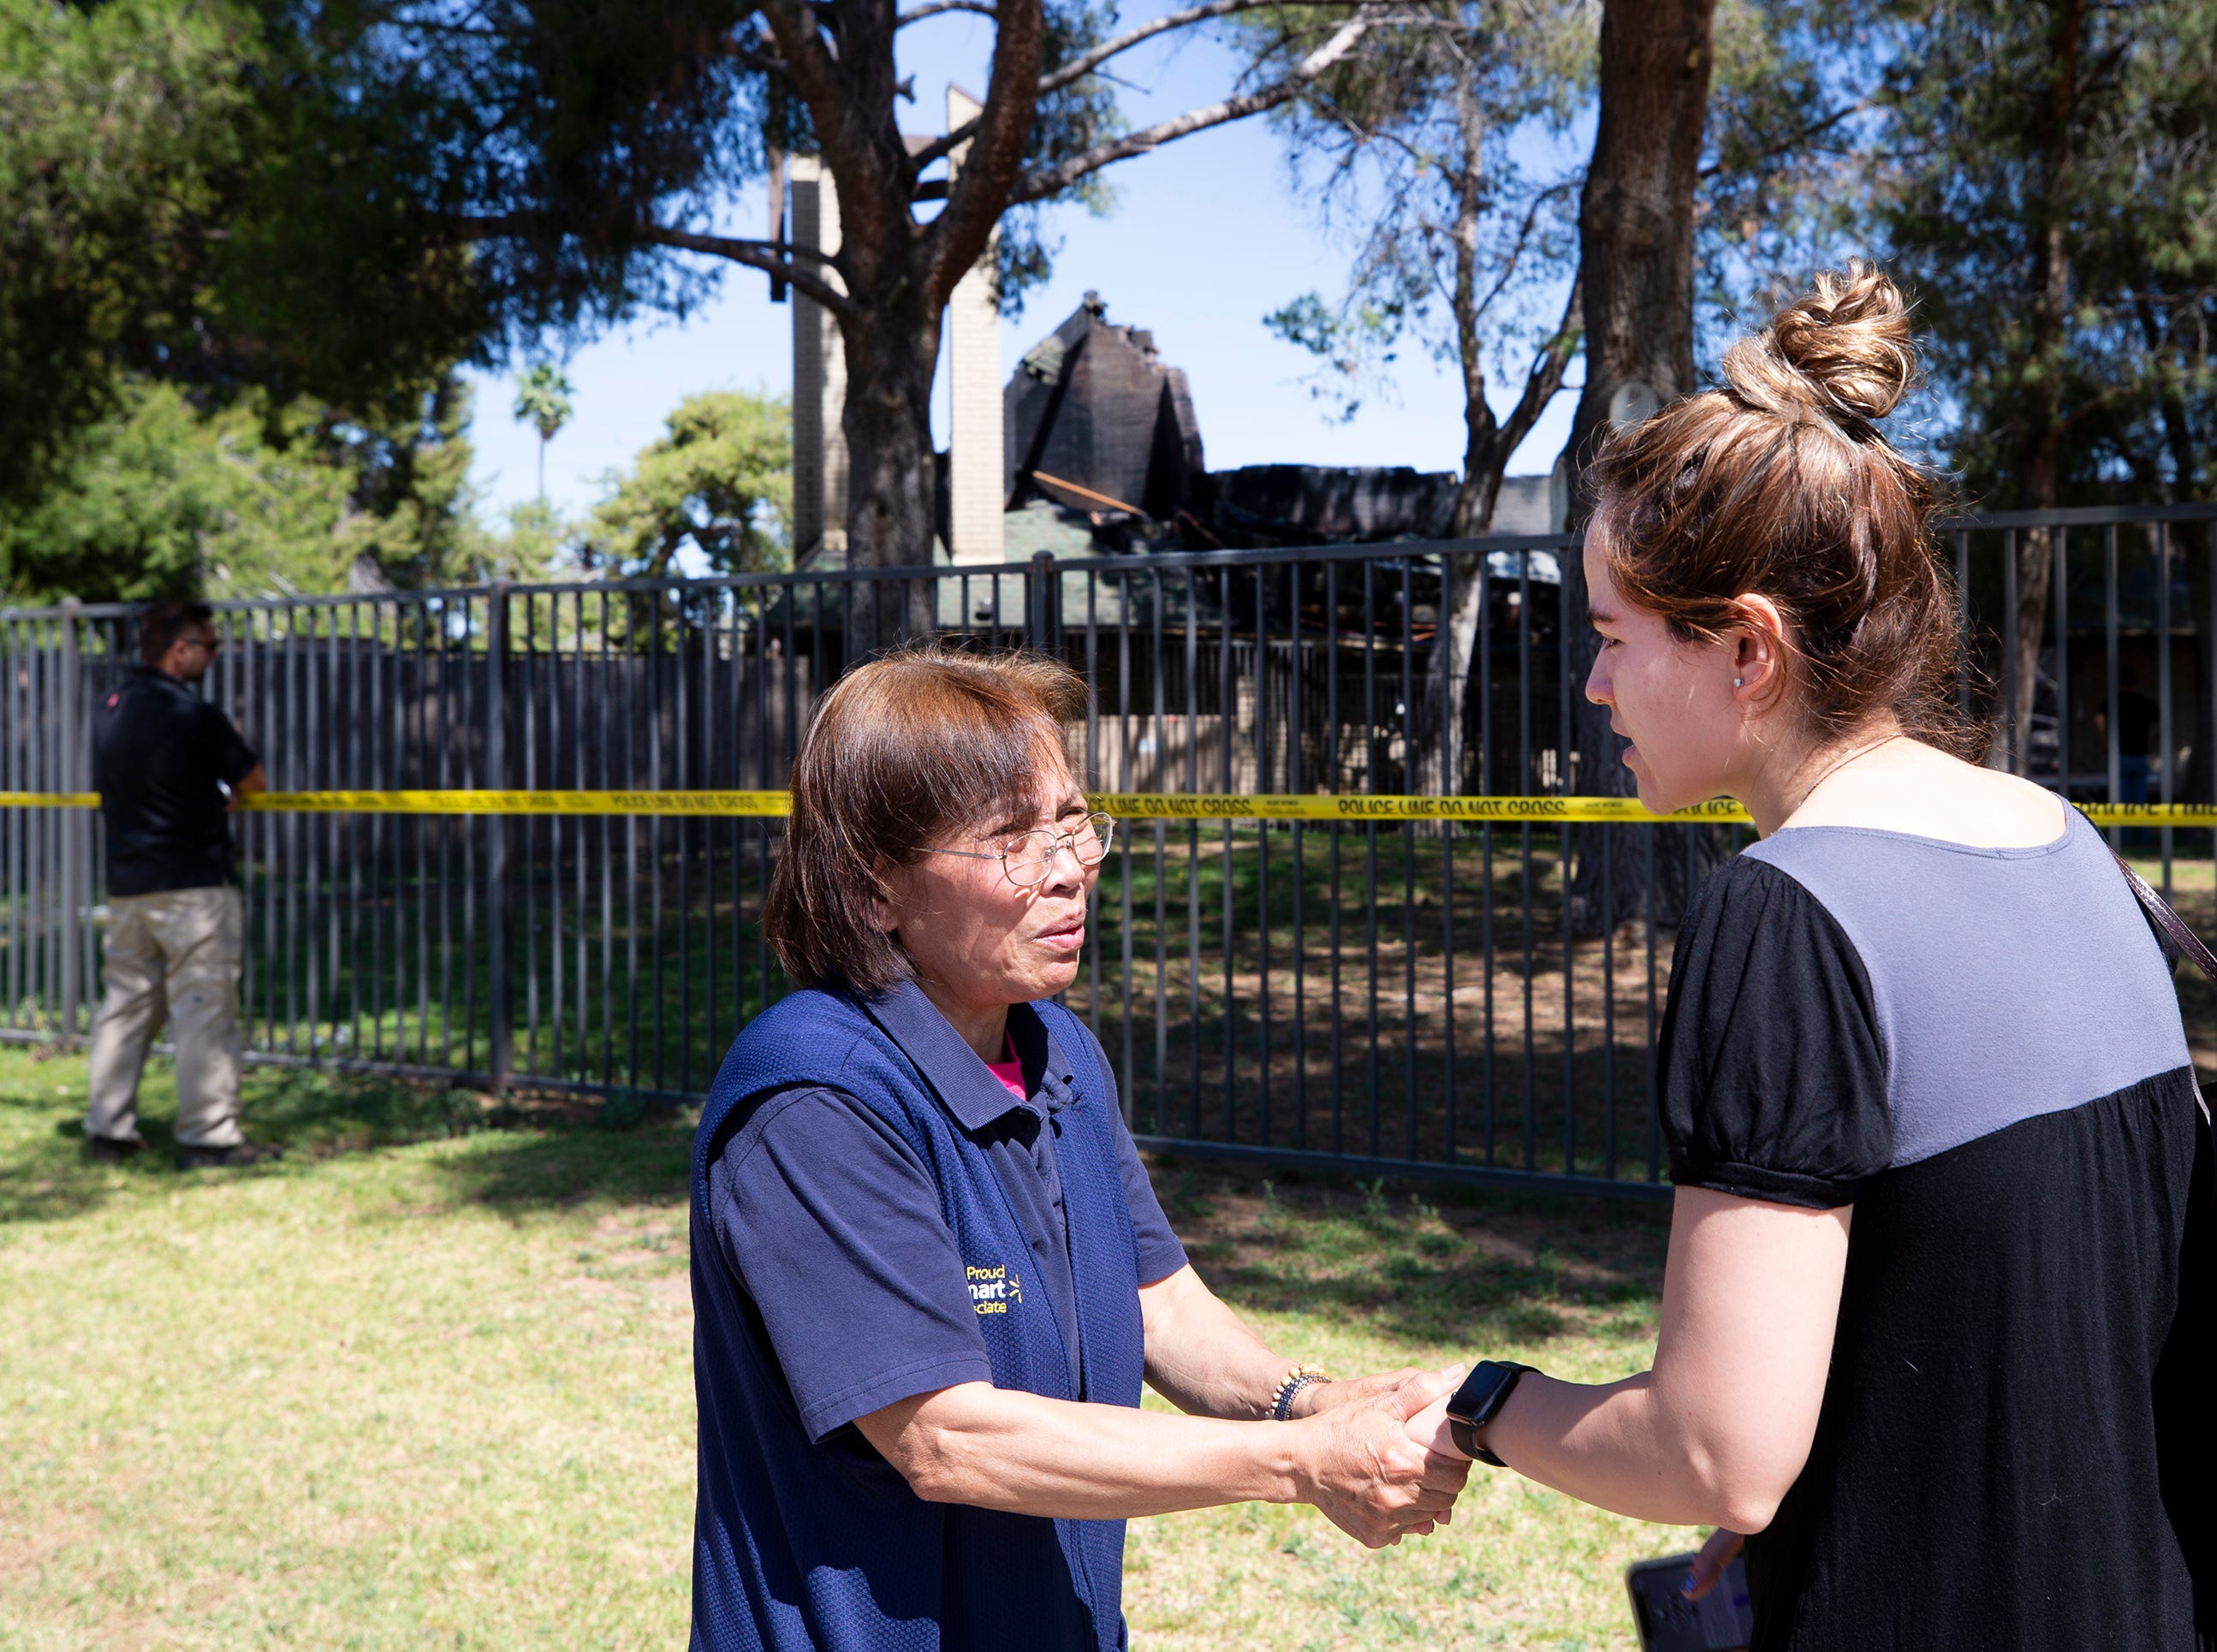 Parishioner Virginia Legarce (left) and Meredith Sanchez-Castillo console each other outside St. Joseph Catholic Church in Phoenix on May 1, 2019, after a fire destroyed most of the church.